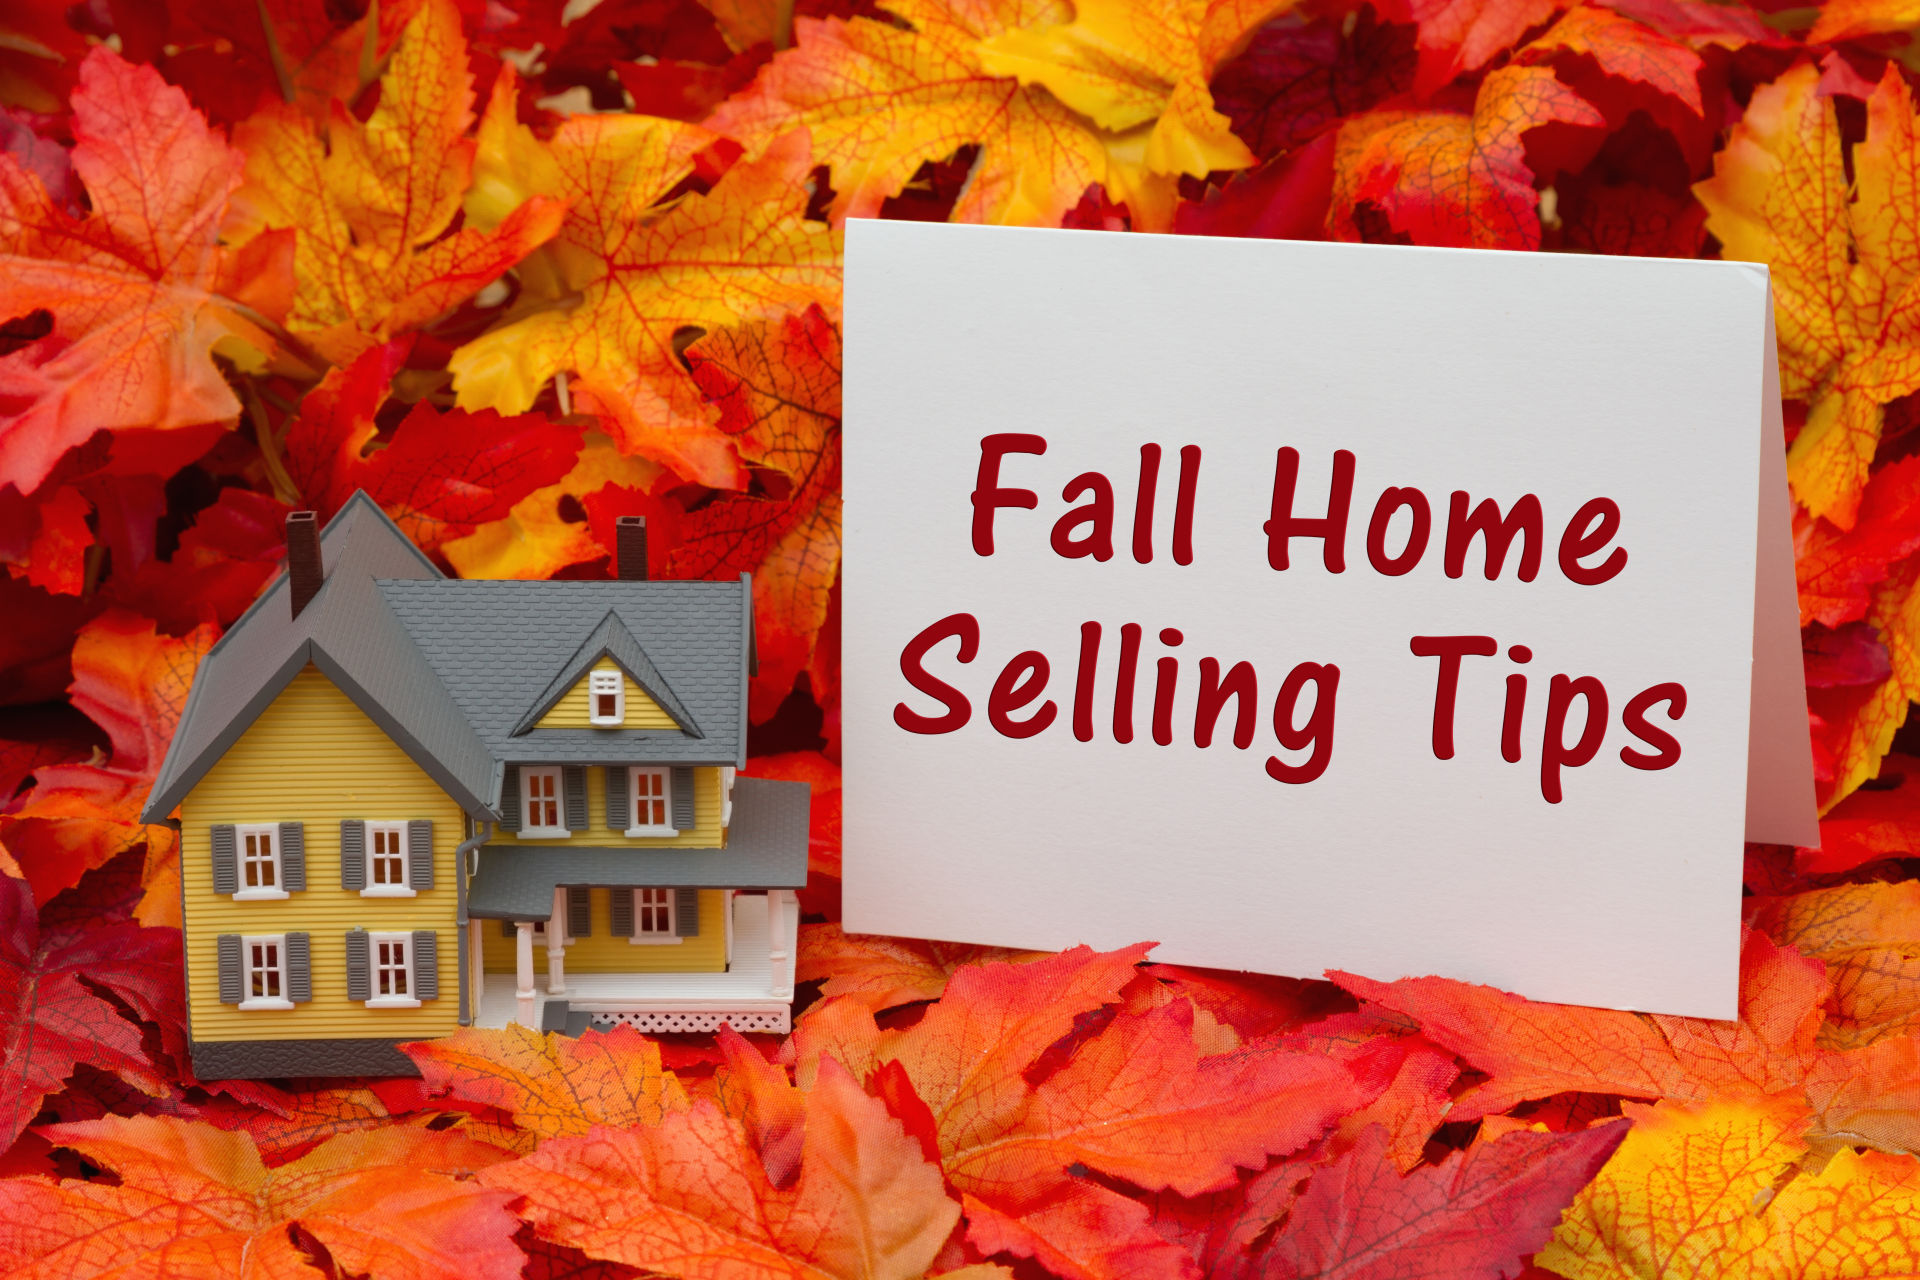 Tips For Selling Your Home In The Fall – The Richard Hopkinson Team